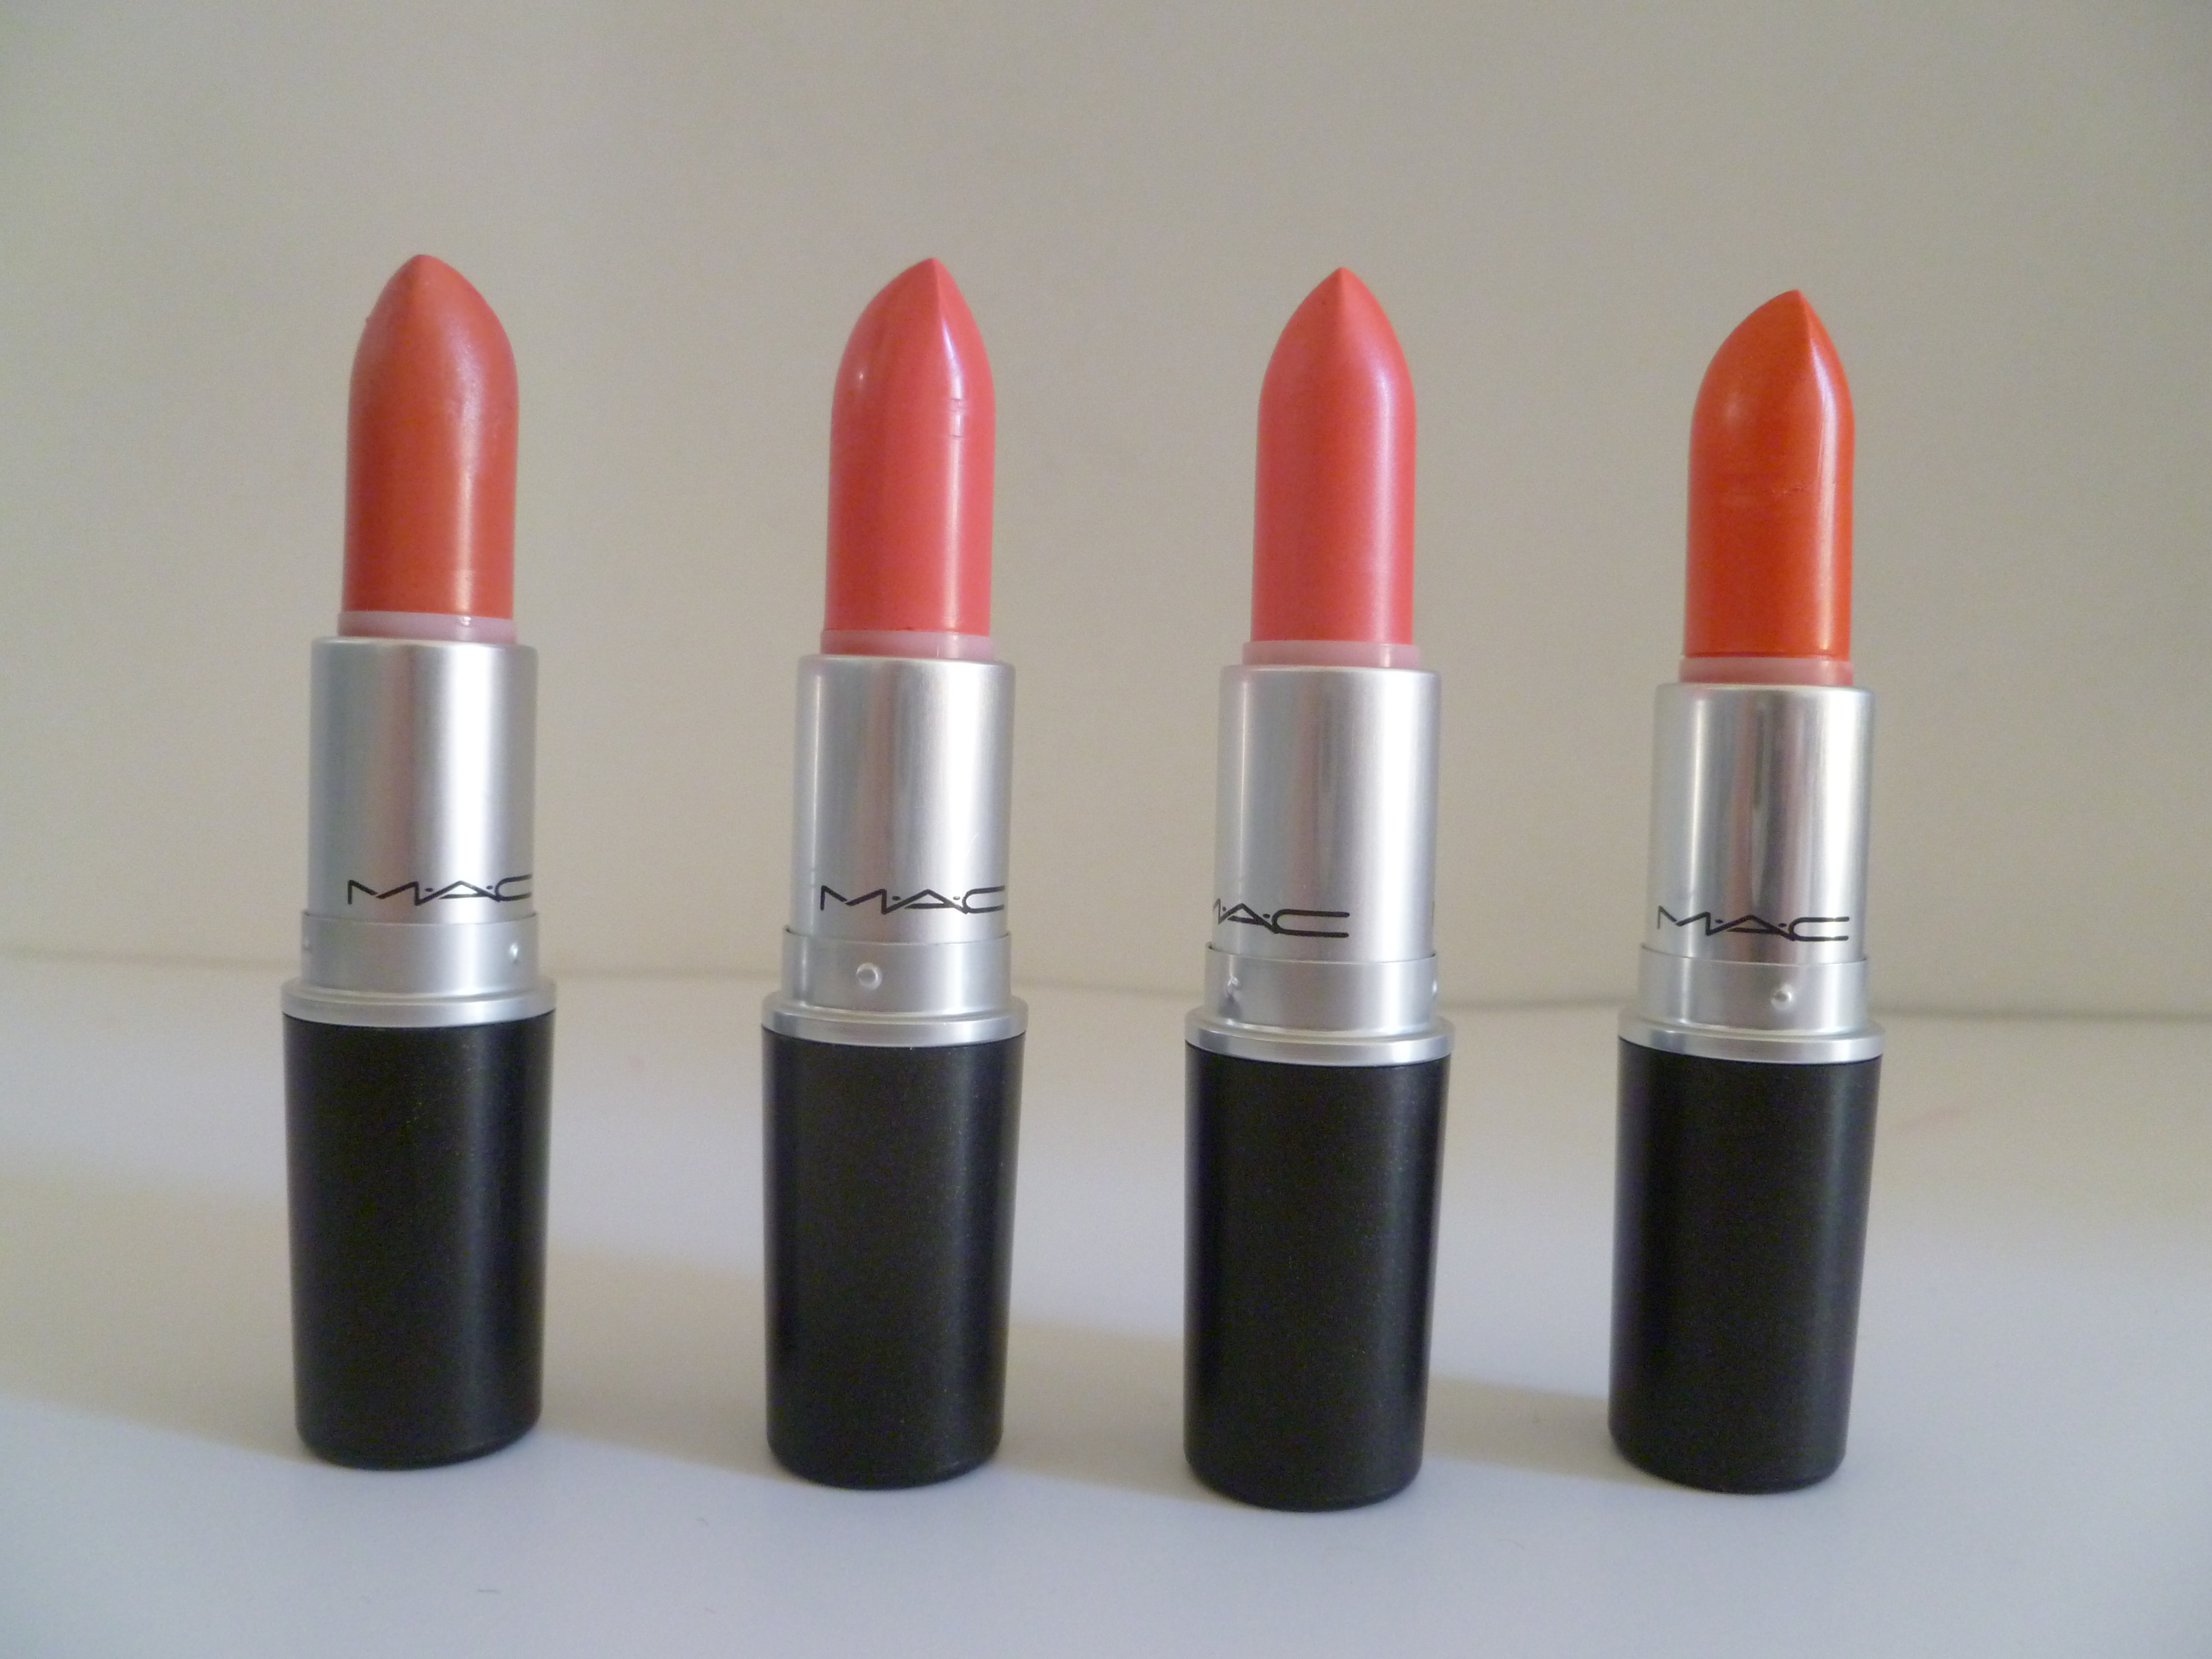 Coral Bliss Mac Lipstick | Talking about Beauty